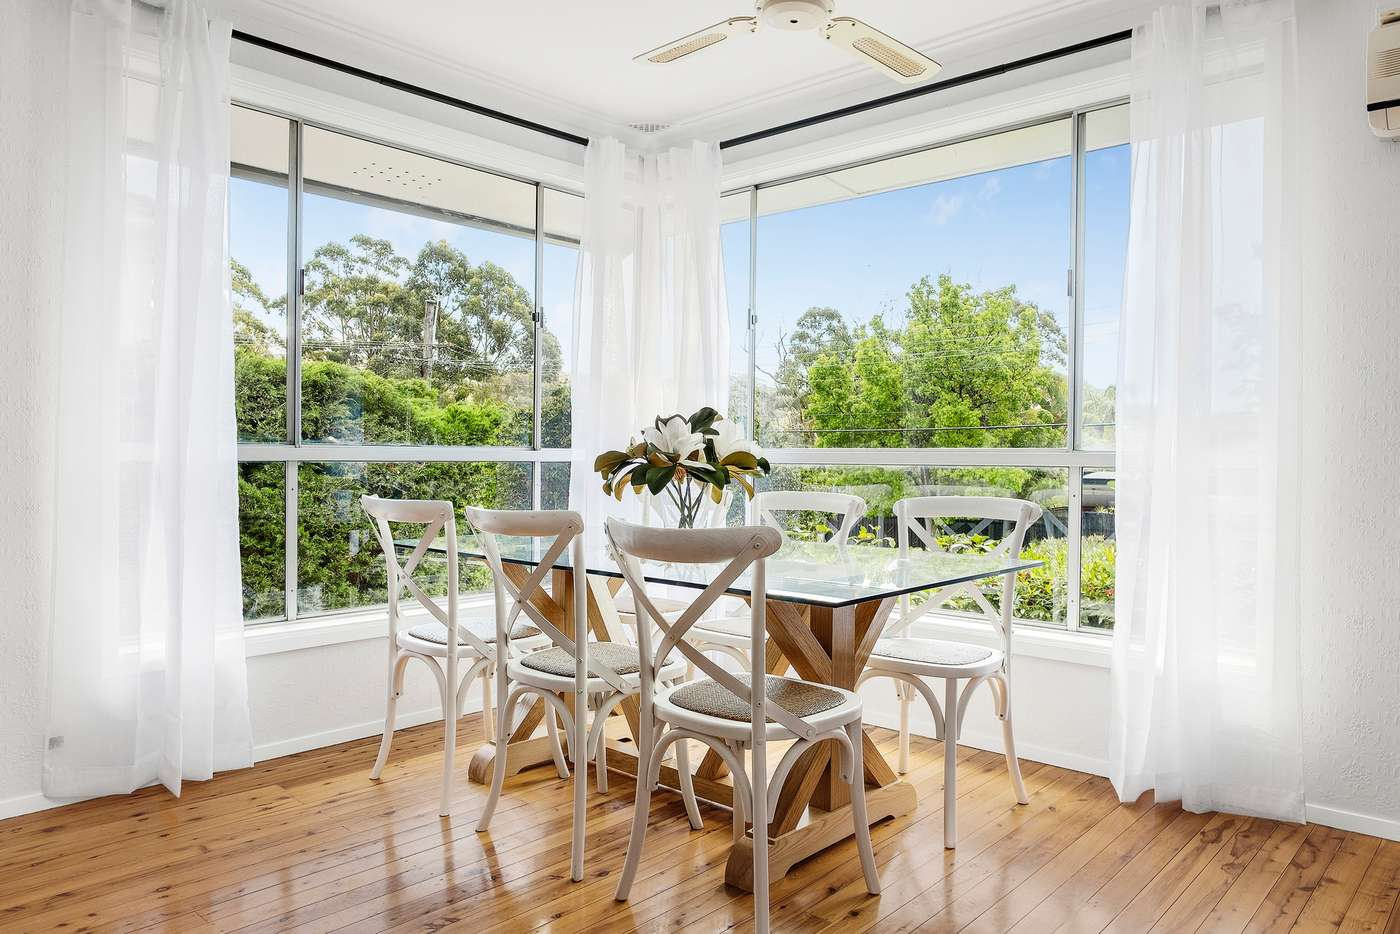 Fifth view of Homely house listing, 183 McIntosh Road, Beacon Hill NSW 2100